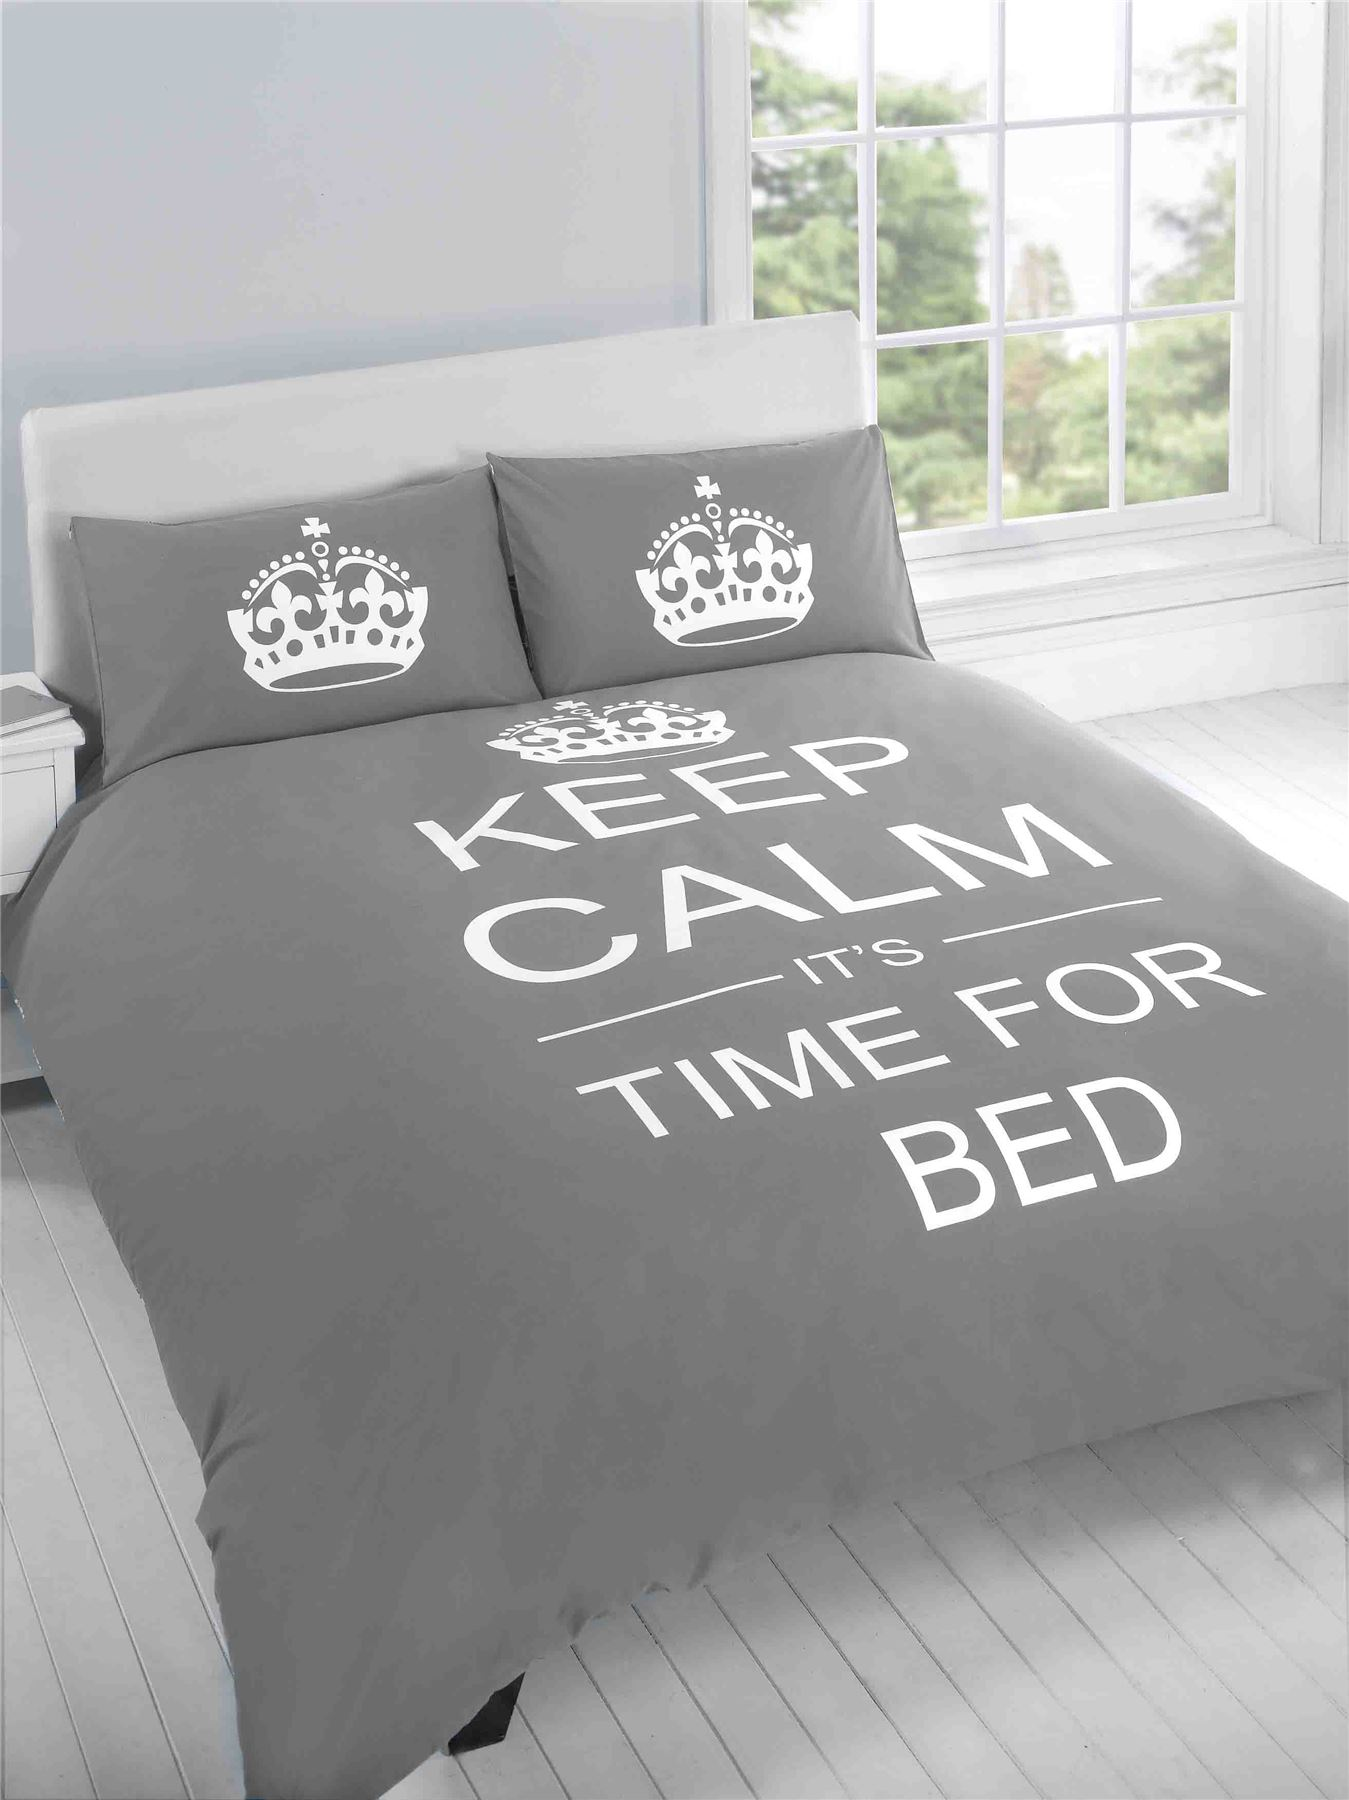 Keep Calm It's Time For Bed Grey Duvet Cover Quilt Set Pillowcase